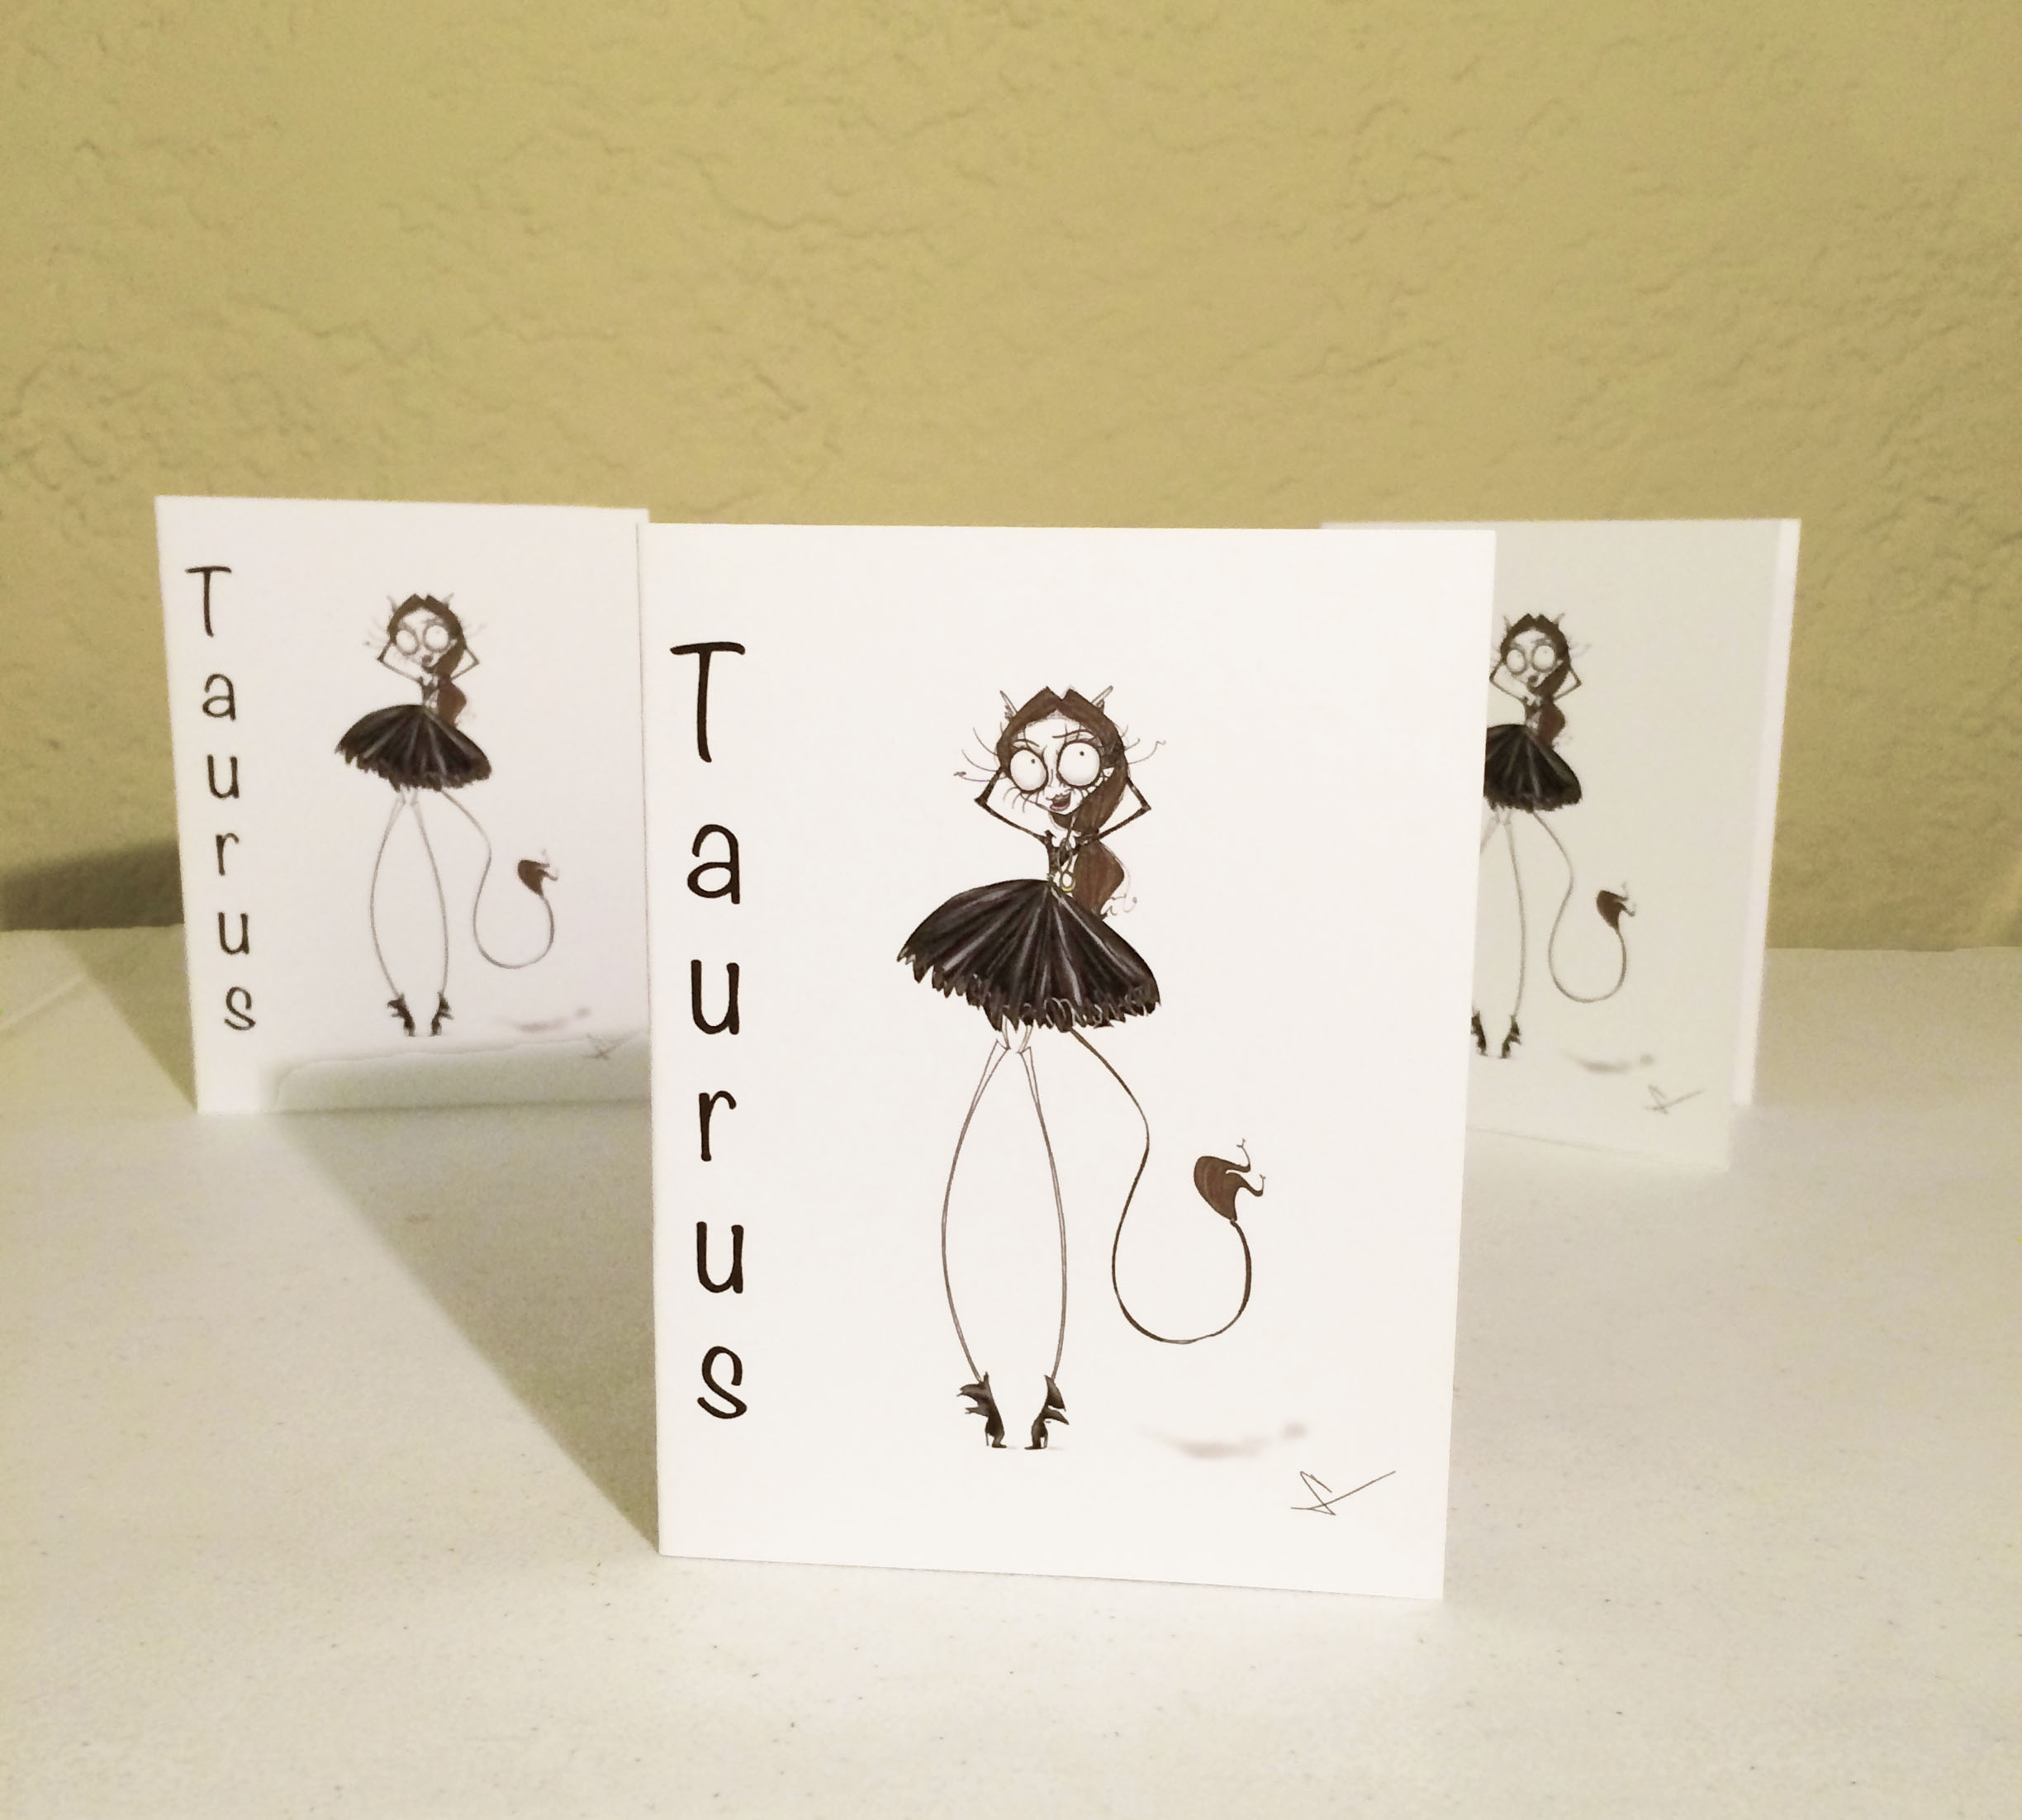 taurus zodiac sign card art